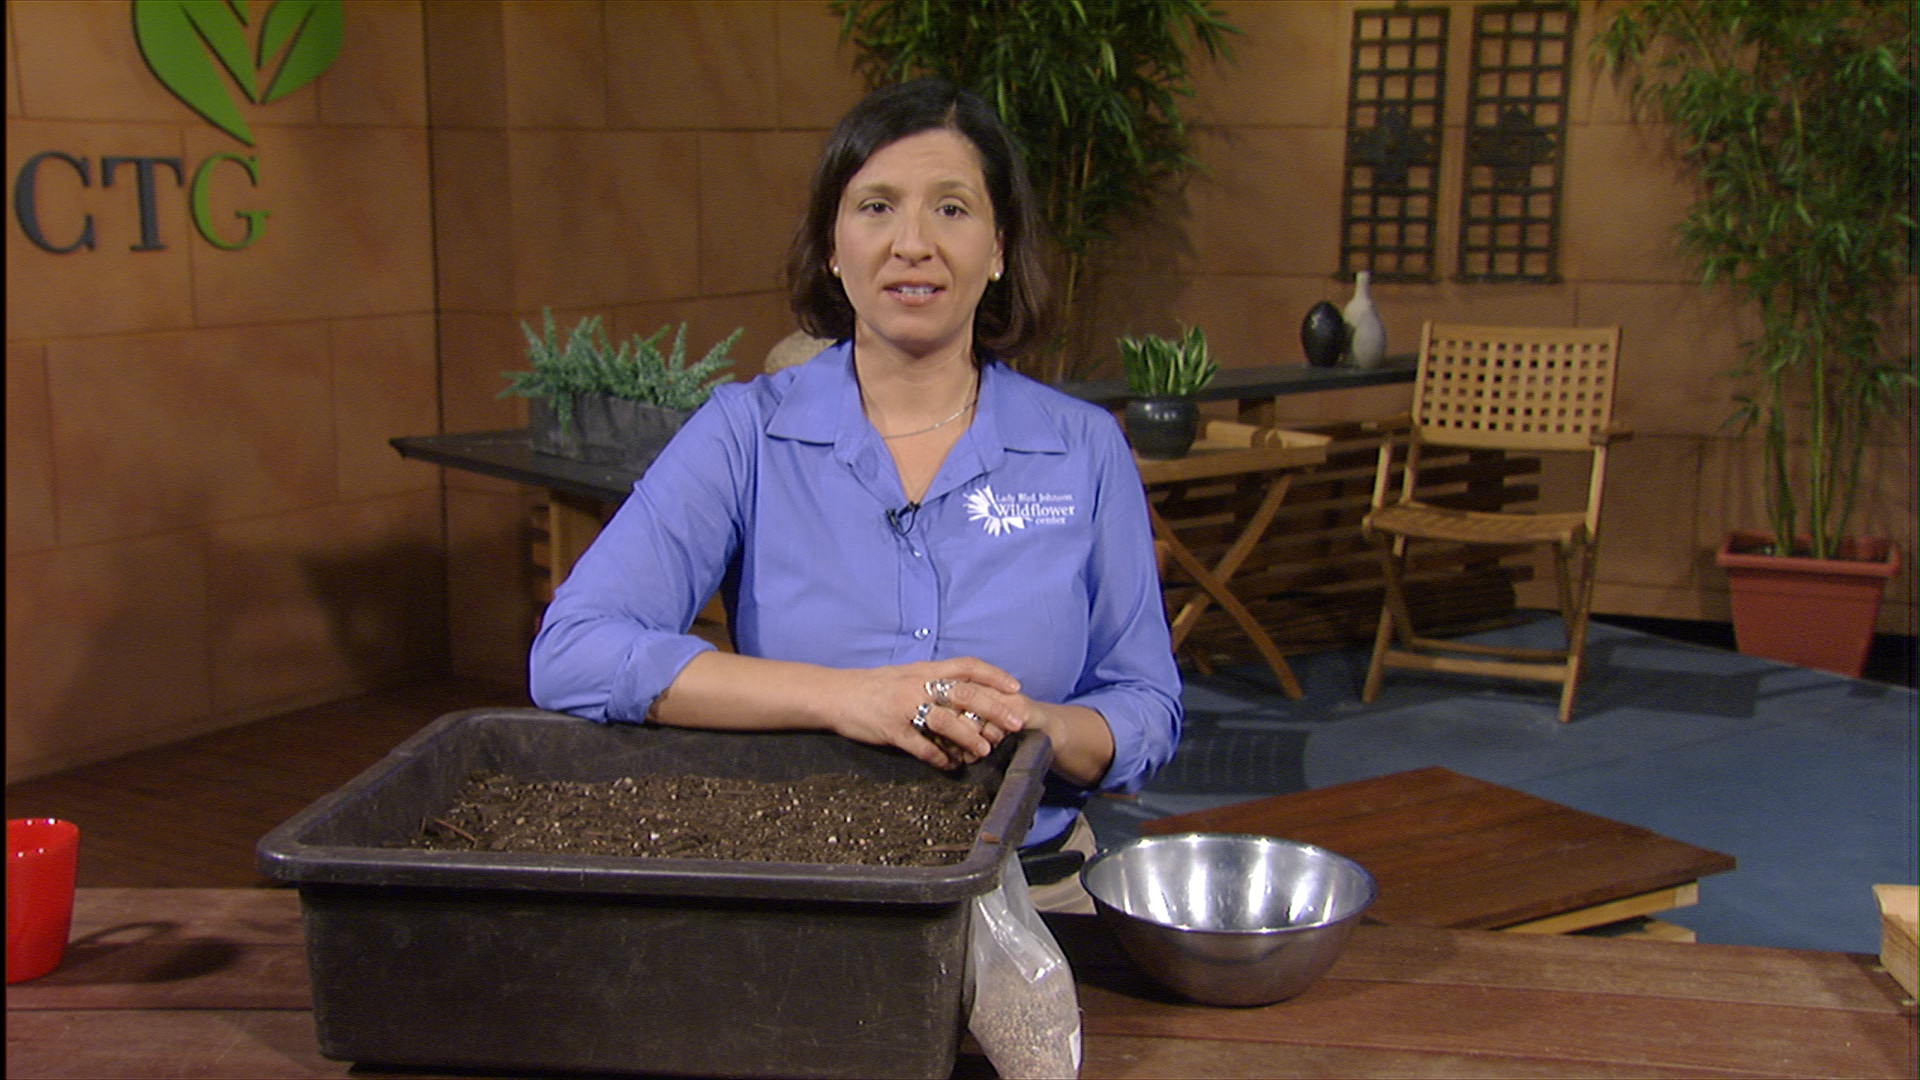 plant bluebonnet seeds